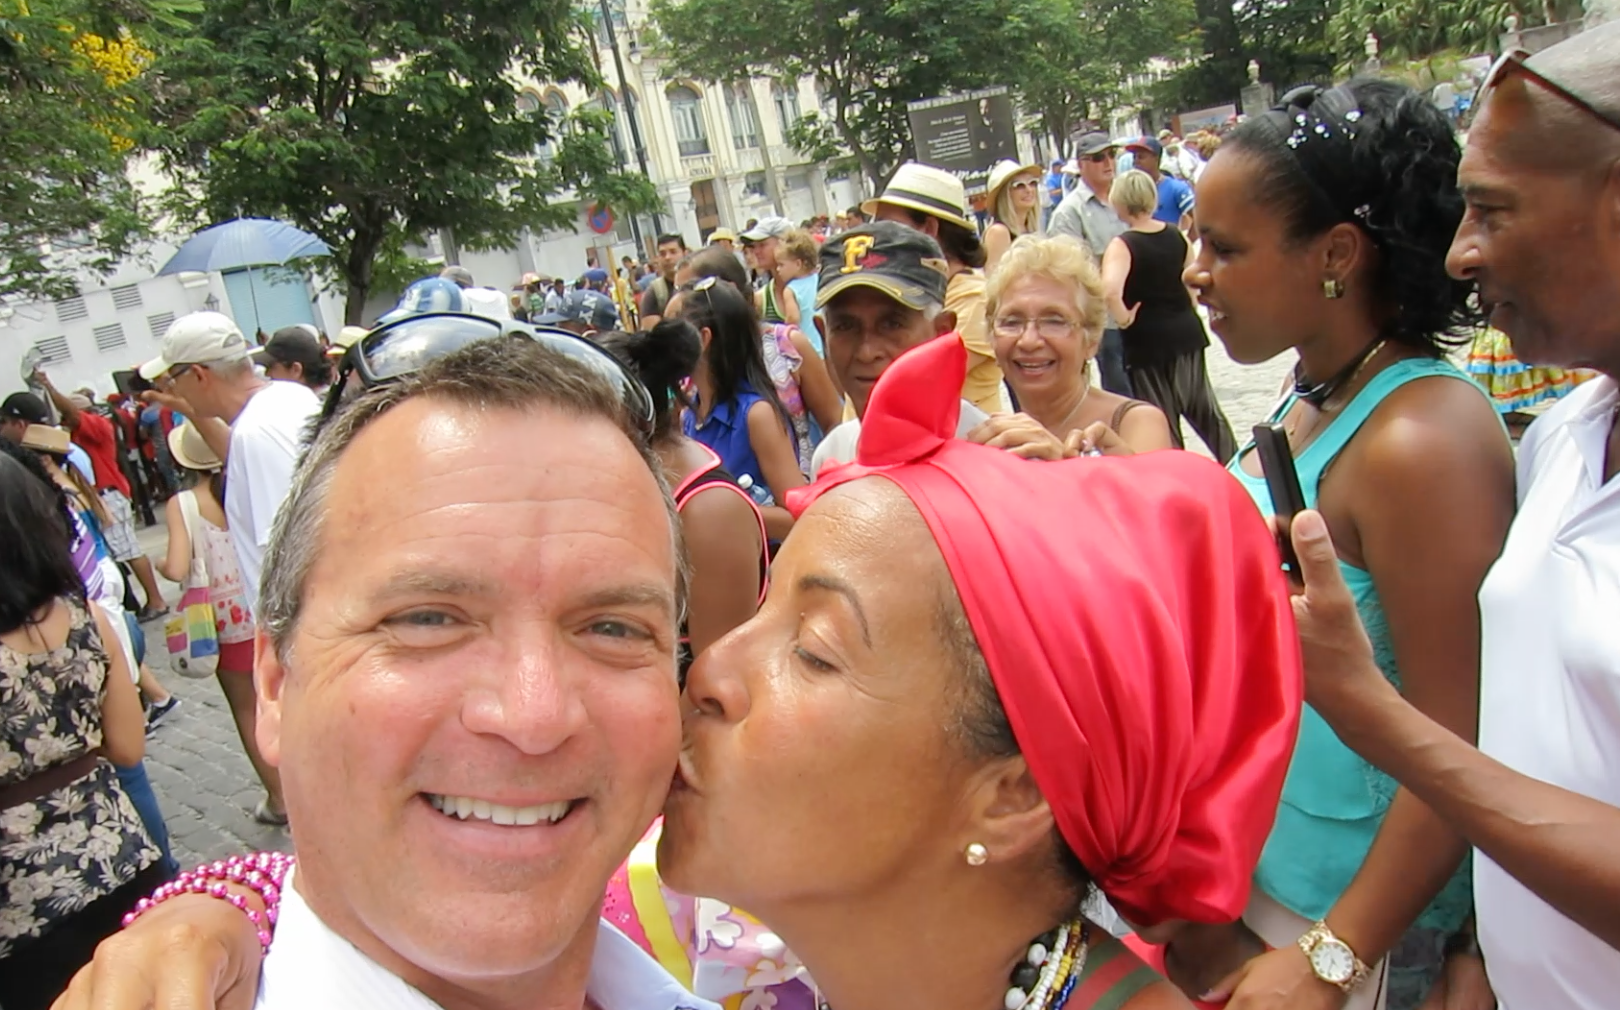 My welcome kiss came with a price in Havana (Photo: Chris McGinnis)